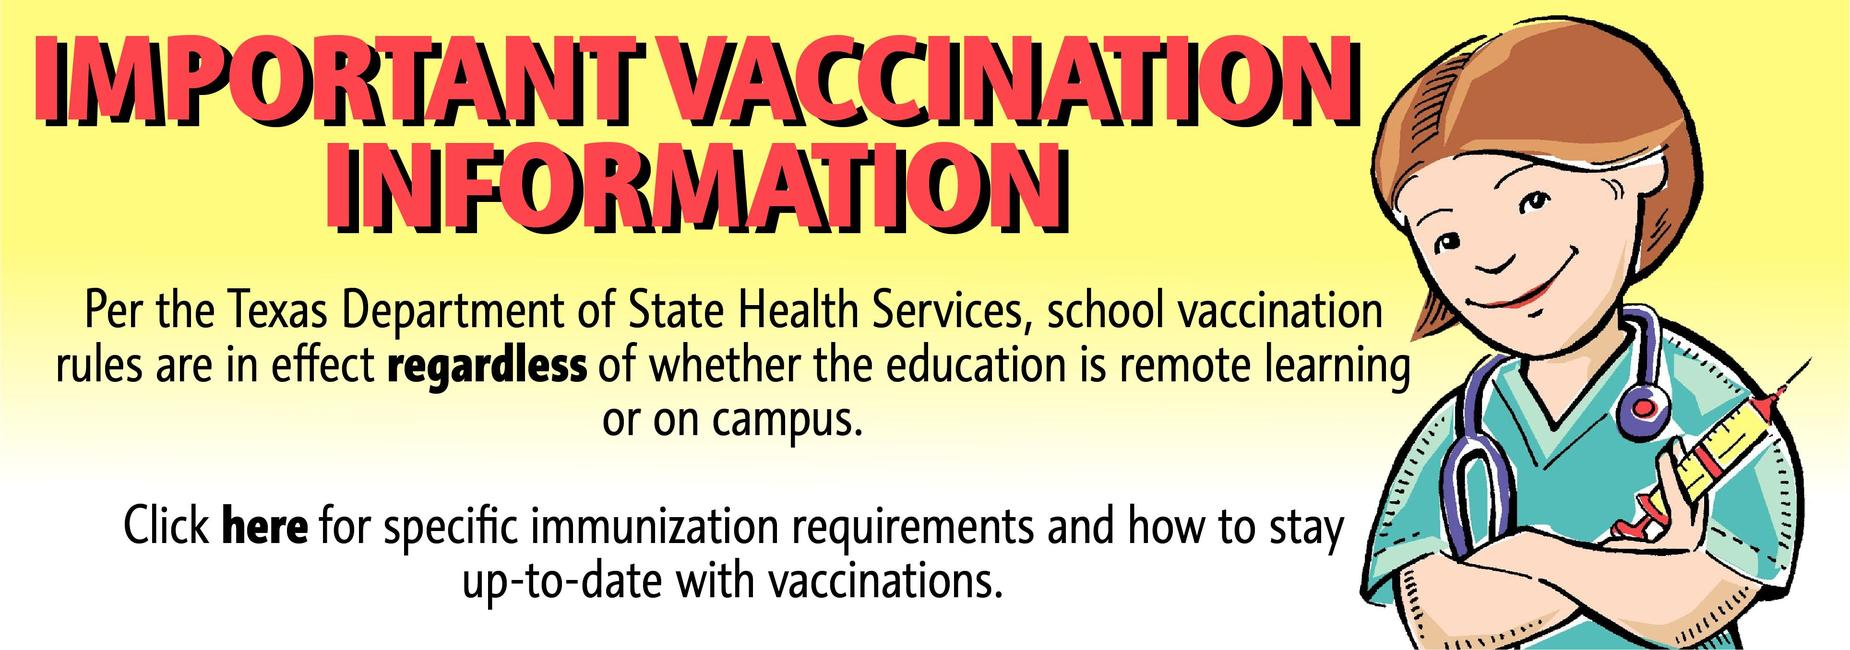 Important Vaccination Information